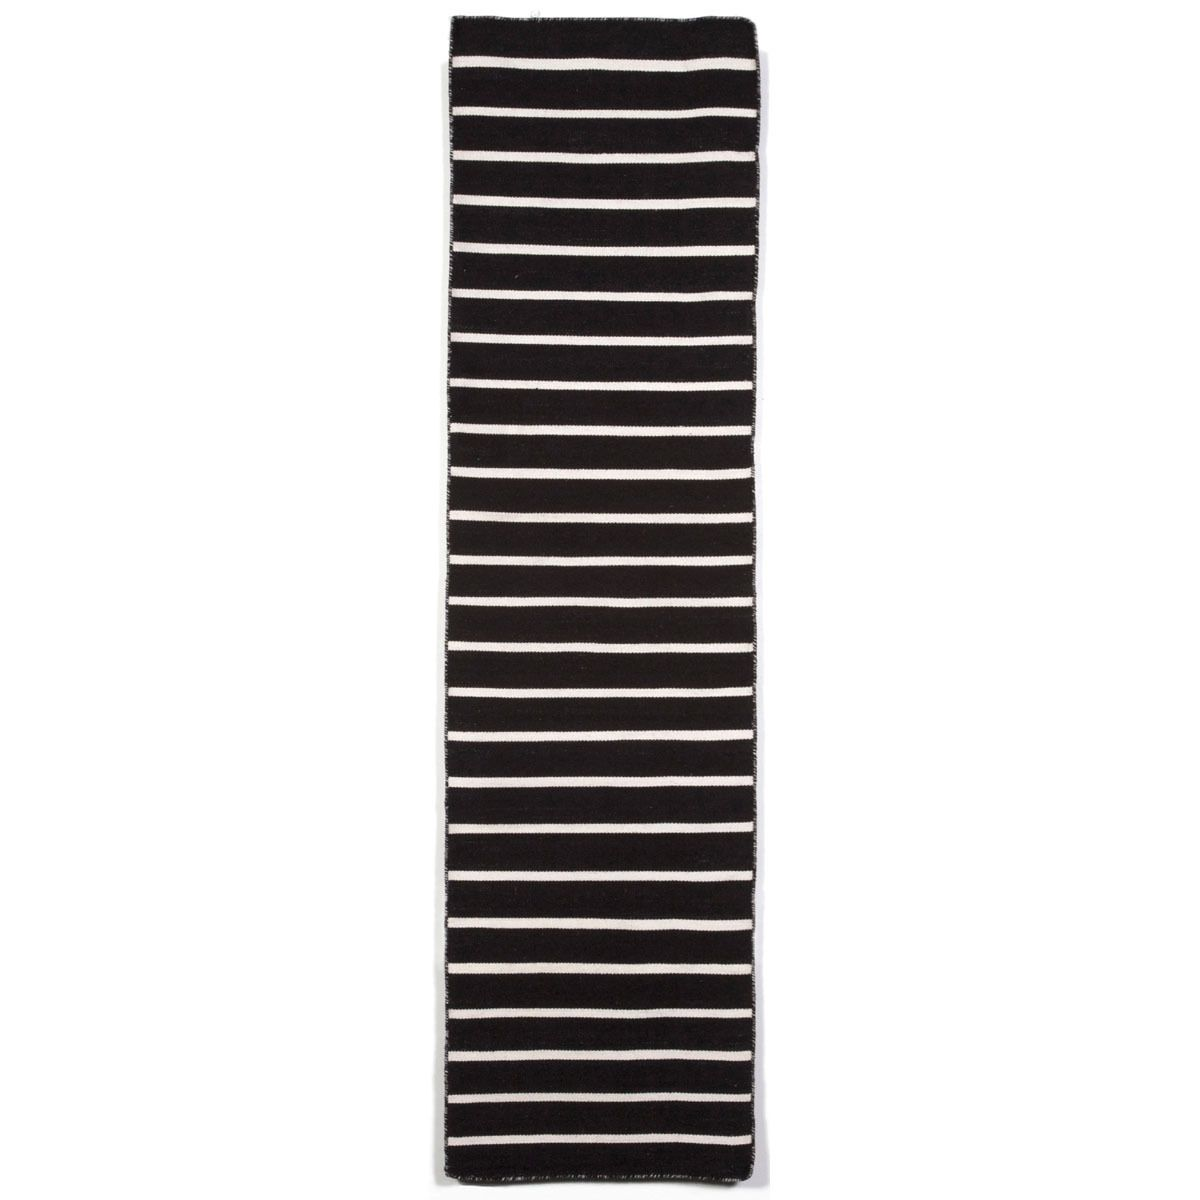 Maybe For Stair Runner Simple Stripe Patterns Combine With Sophisticated Shades Of Black And White I Indoor Outdoor Area Rugs Indoor Outdoor Rugs Liora Manne